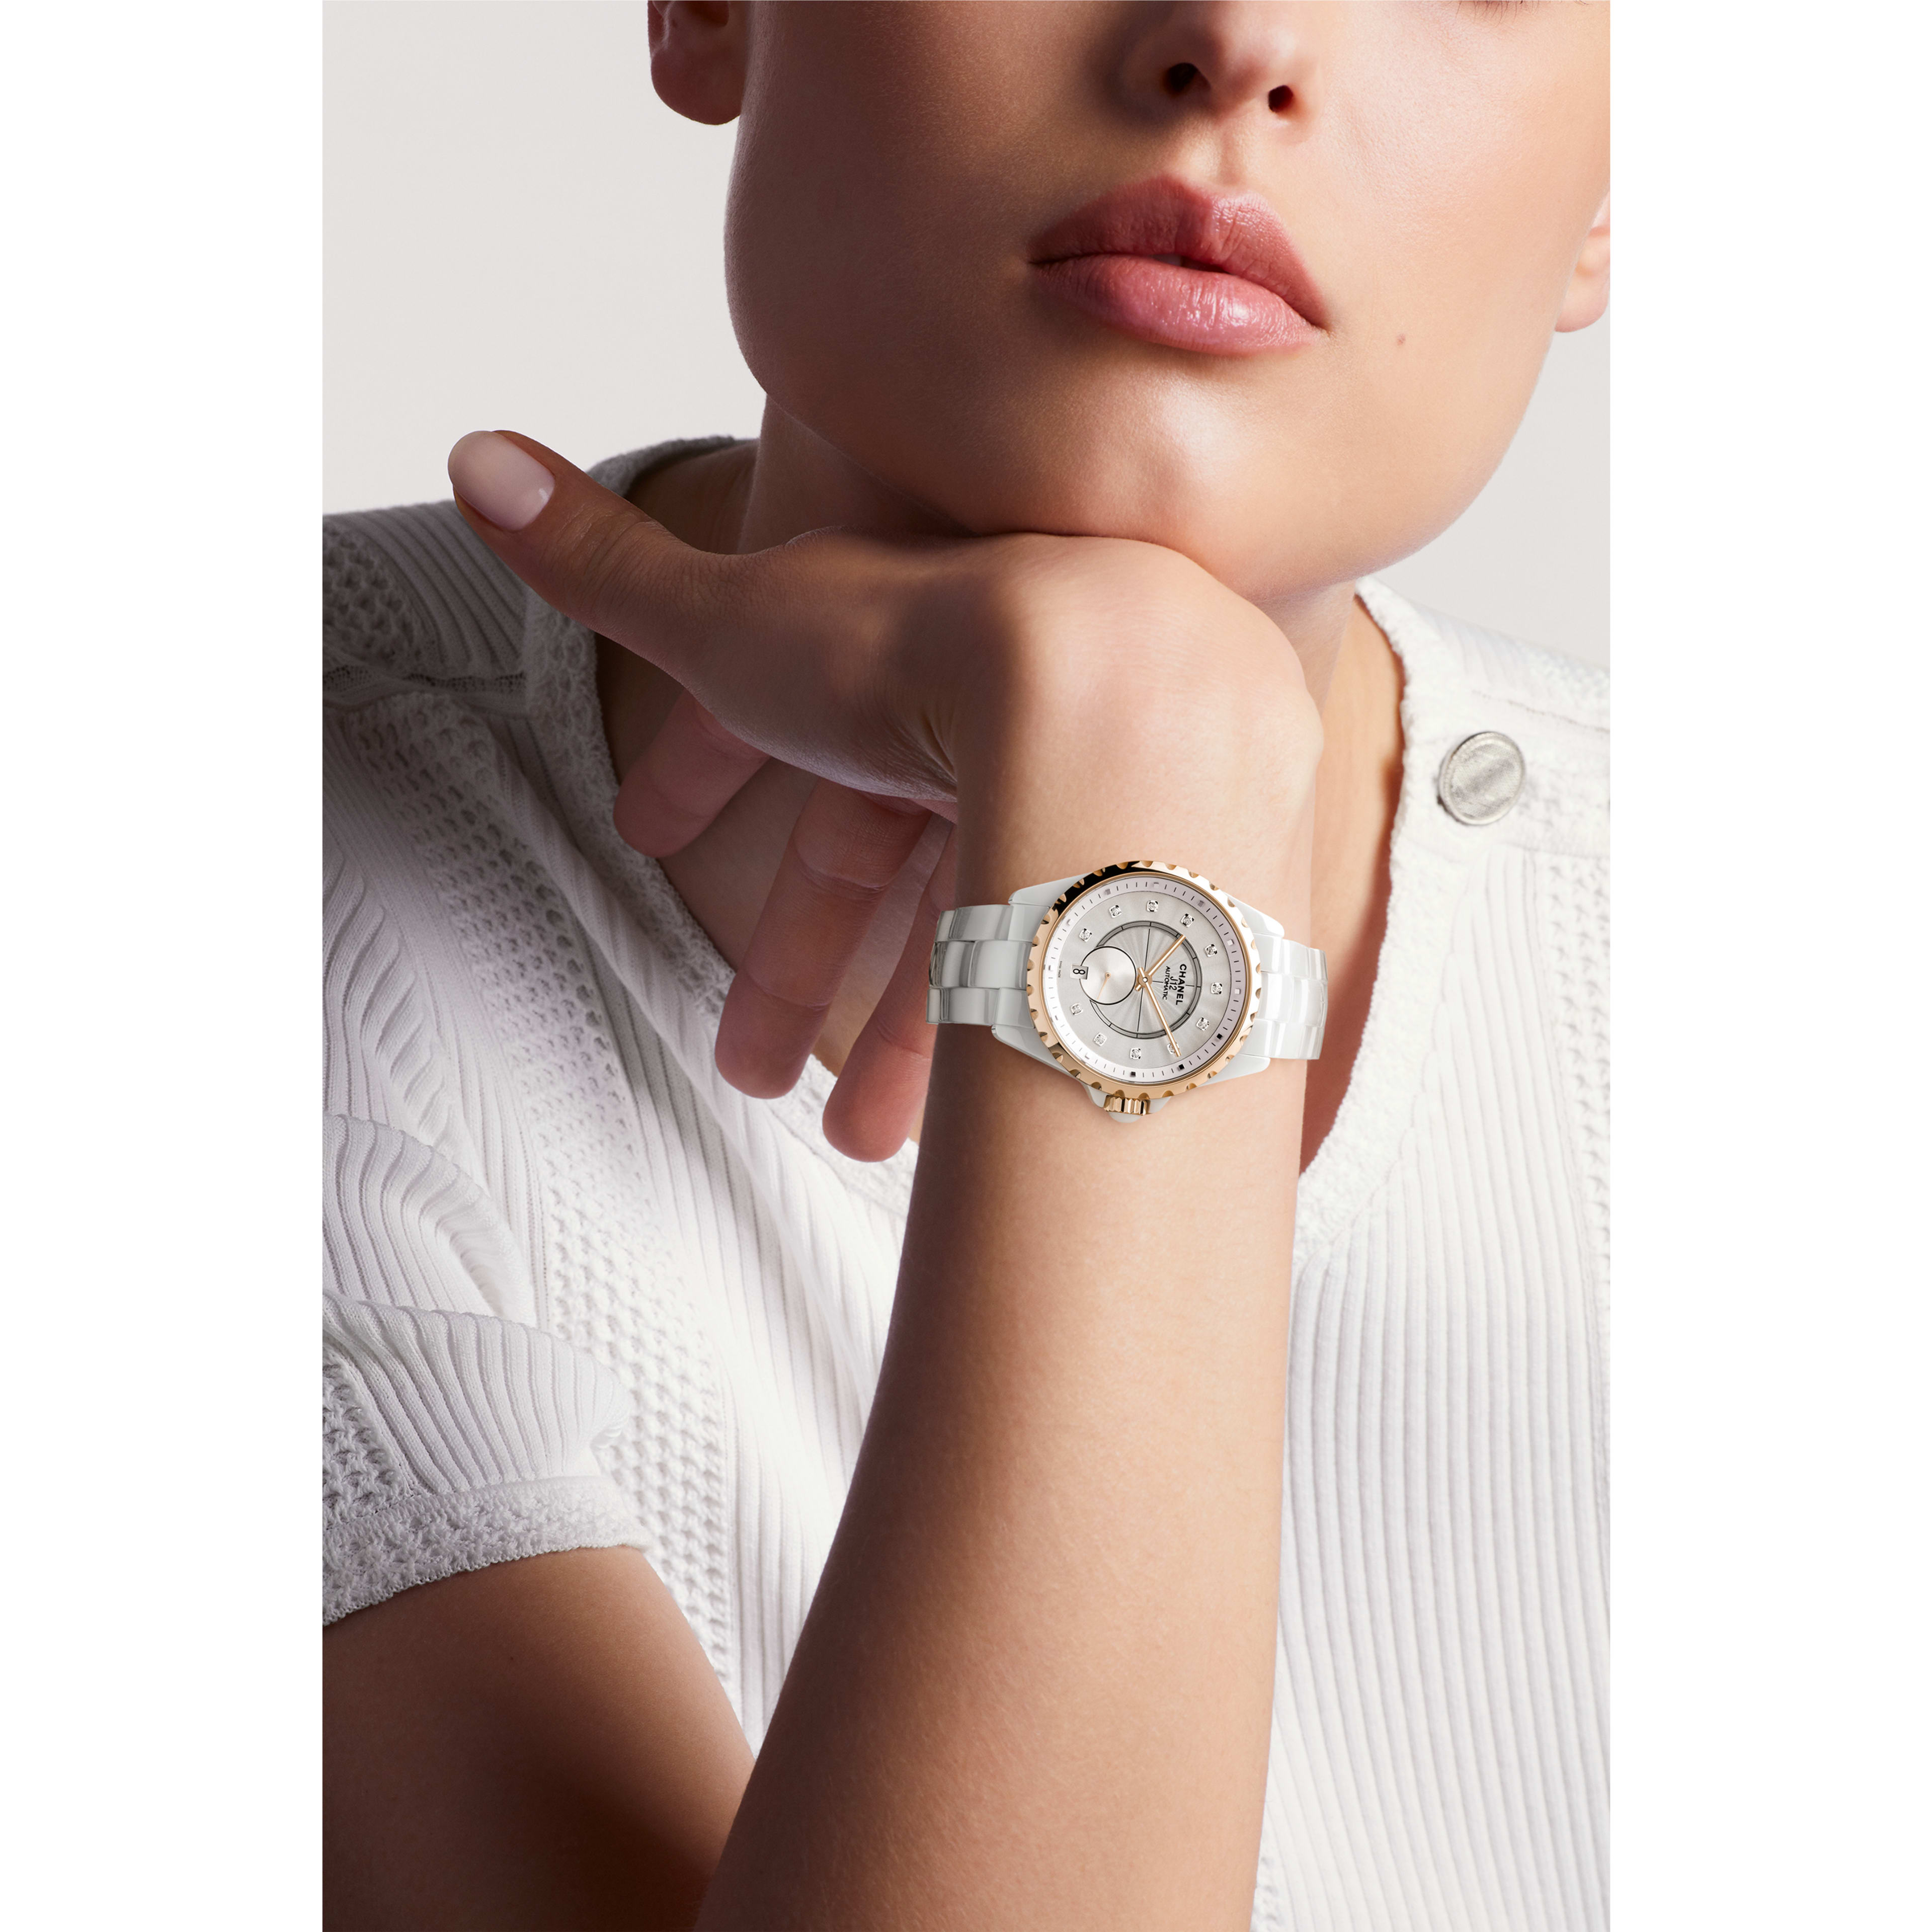 J12-365 Watch - White highly-resistant ceramic and 18K BEIGE GOLD, diamond indicators - Worn view